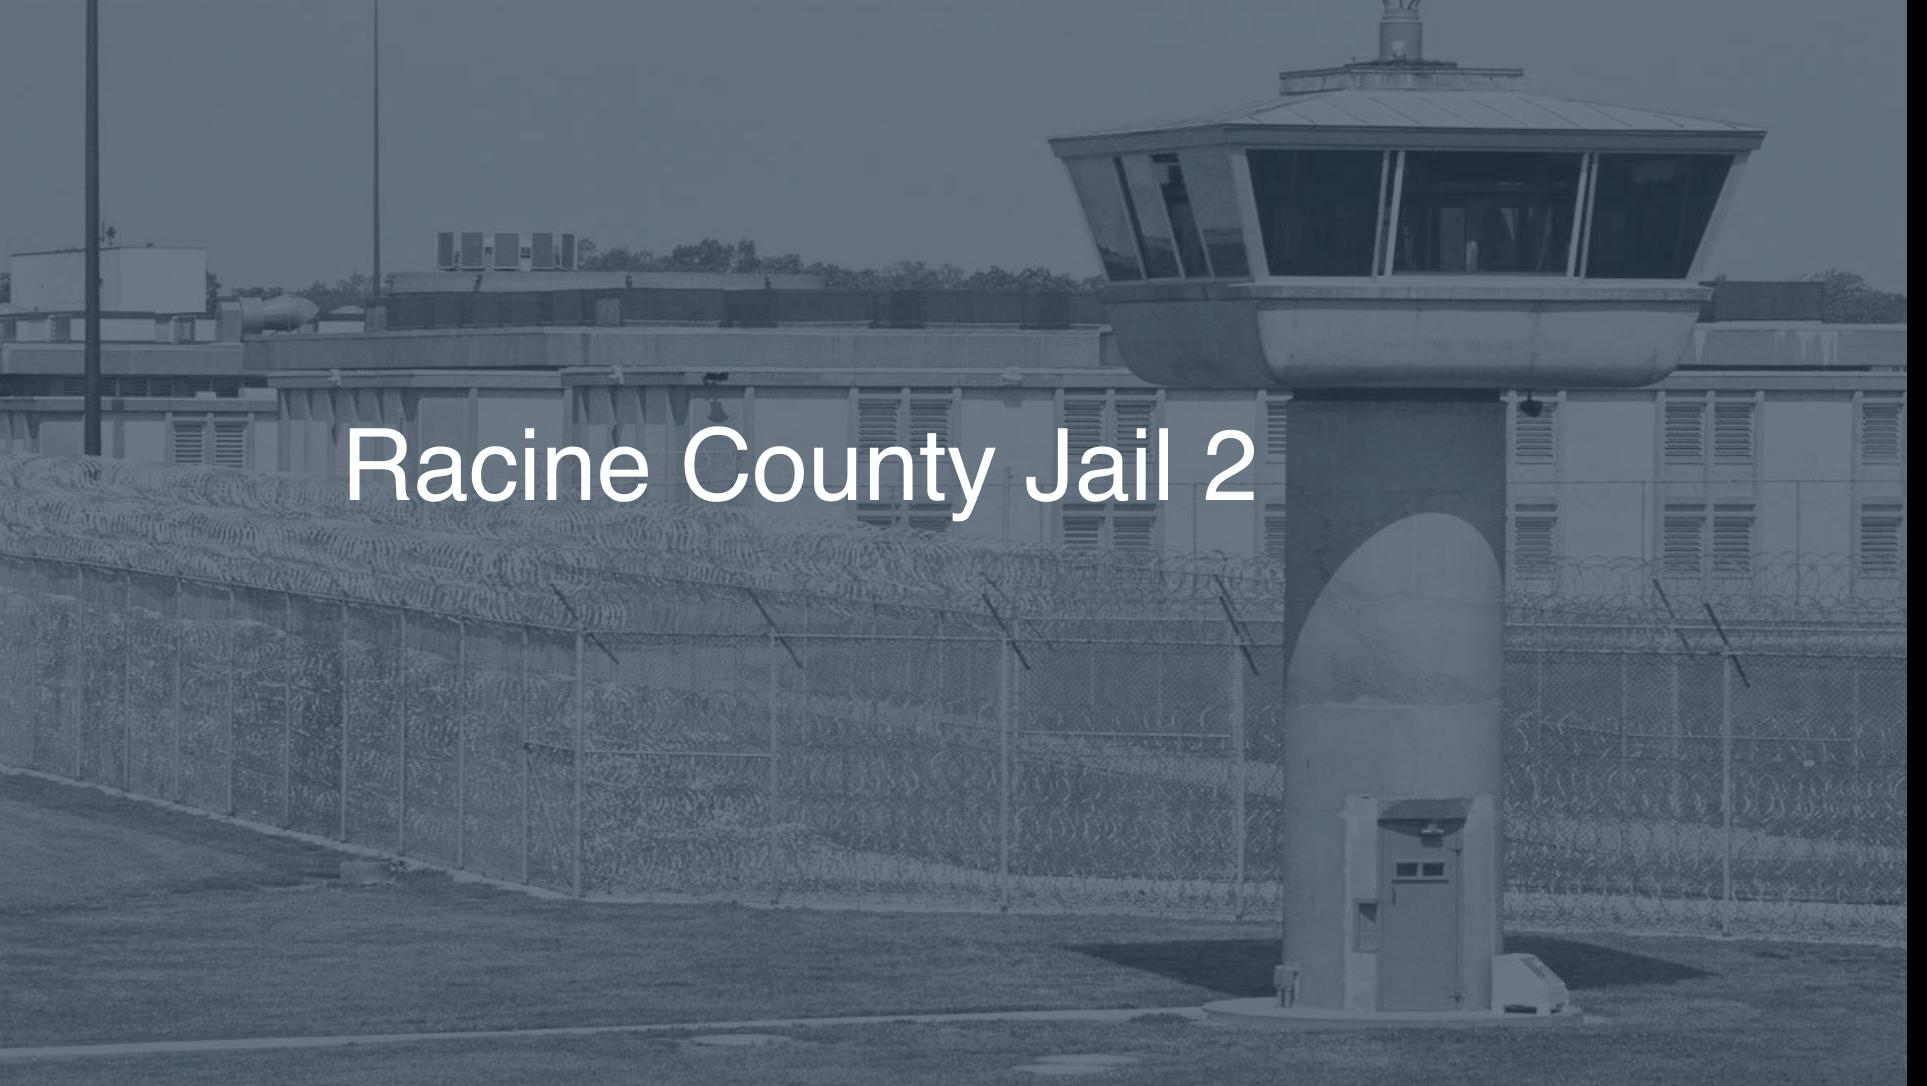 Racine County Jail correctional facility picture